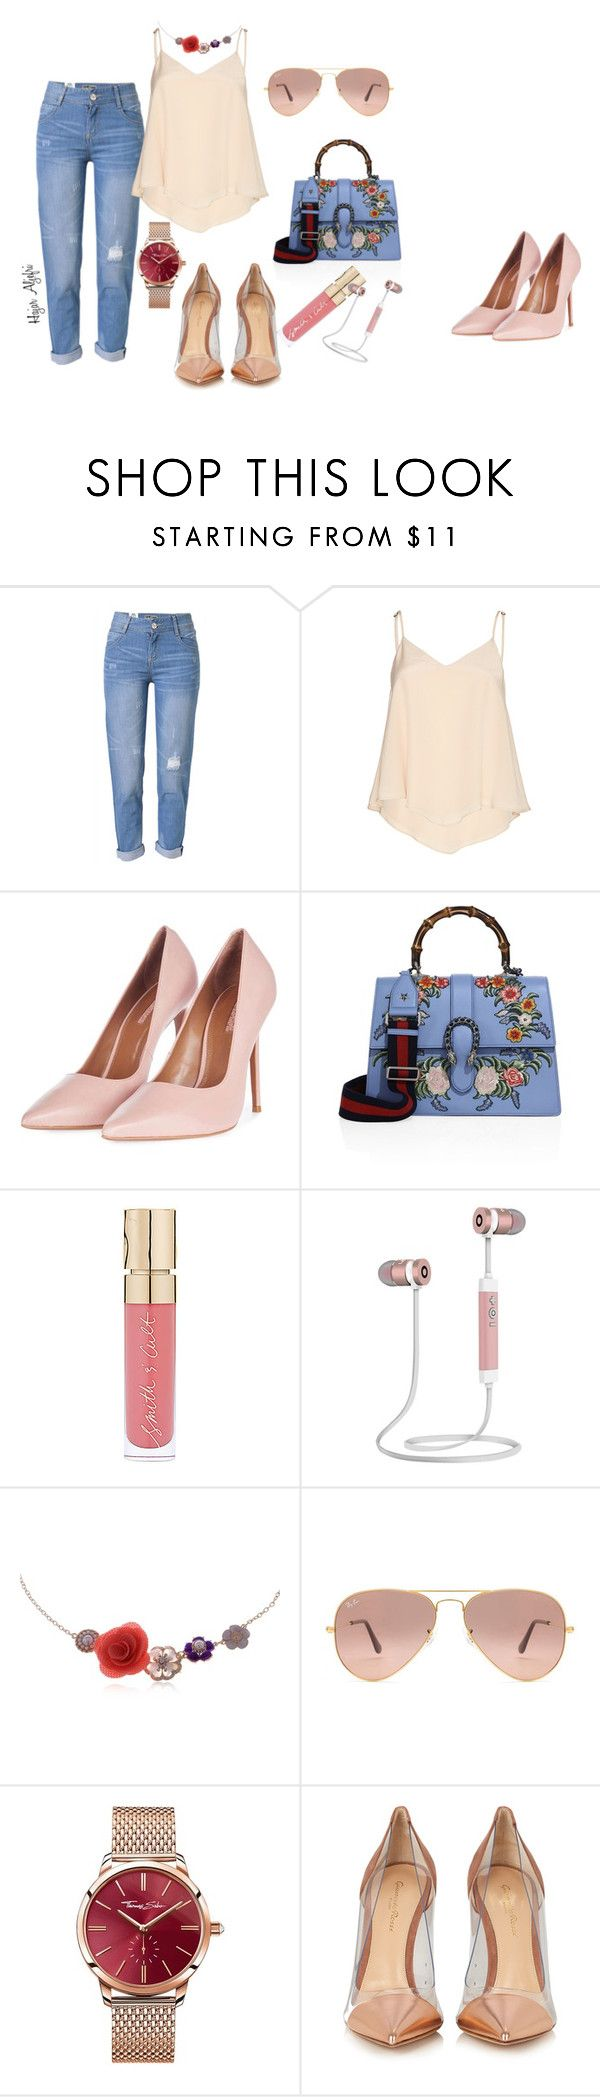 """""""Fashion"""" by hajar-111 on Polyvore featuring WithChic, Alice + Olivia, Topshop, Gucci, Smith & Cult, Ray-Ban, Thomas Sabo and Gianvito Rossi"""